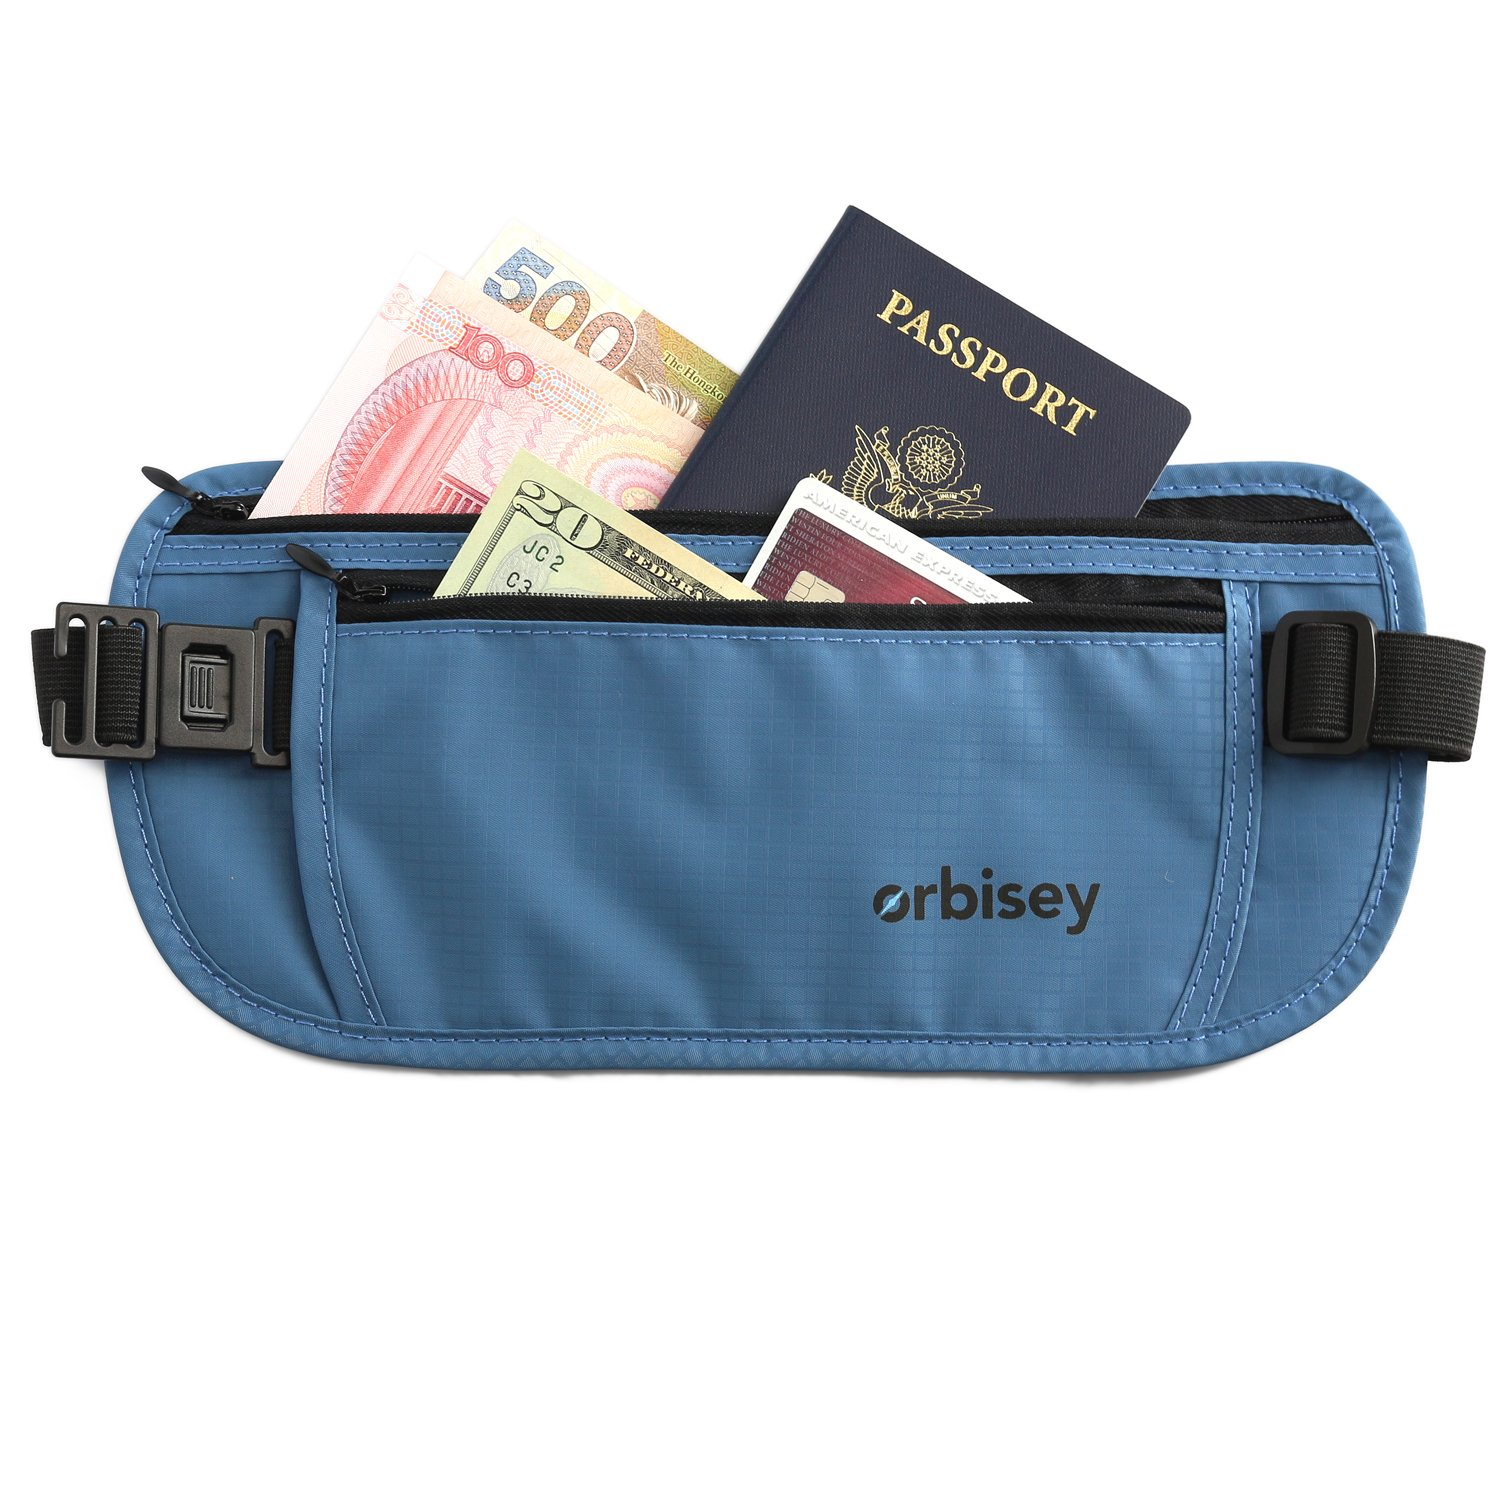 Orbisey Travel Adventure Hidden Waist Money Belt Water-Resistant for Passport, Credit Cards, Phone, Documents One-Size Fits All